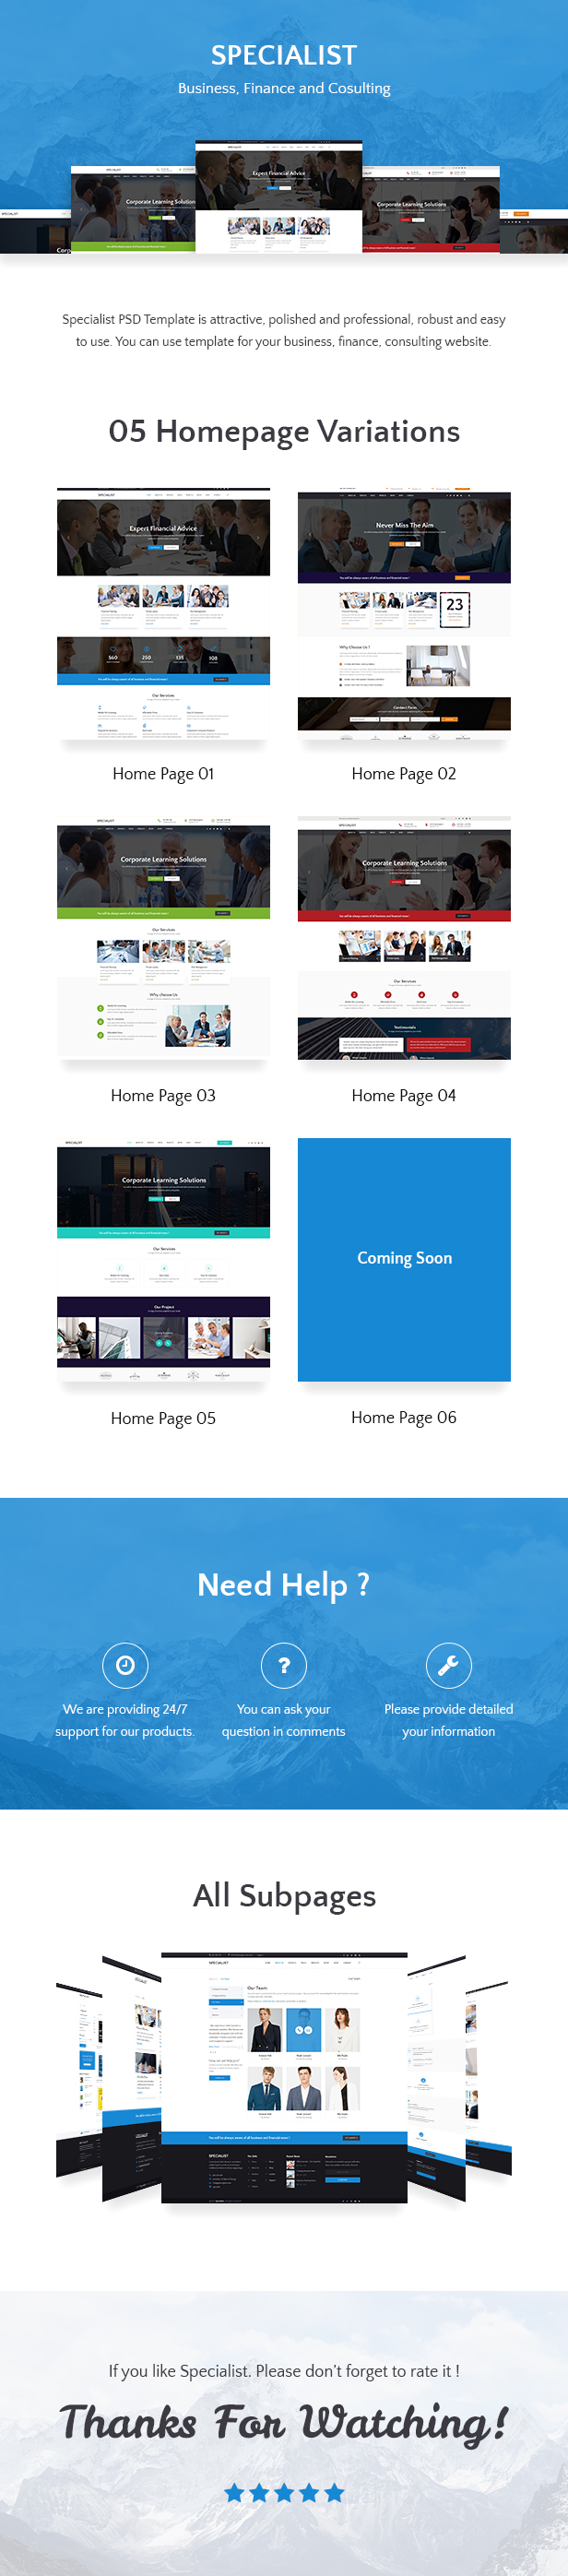 Specialist   Multipurpose Business & Financial, Consulting, Accounting, Broker Psd Templates - 1